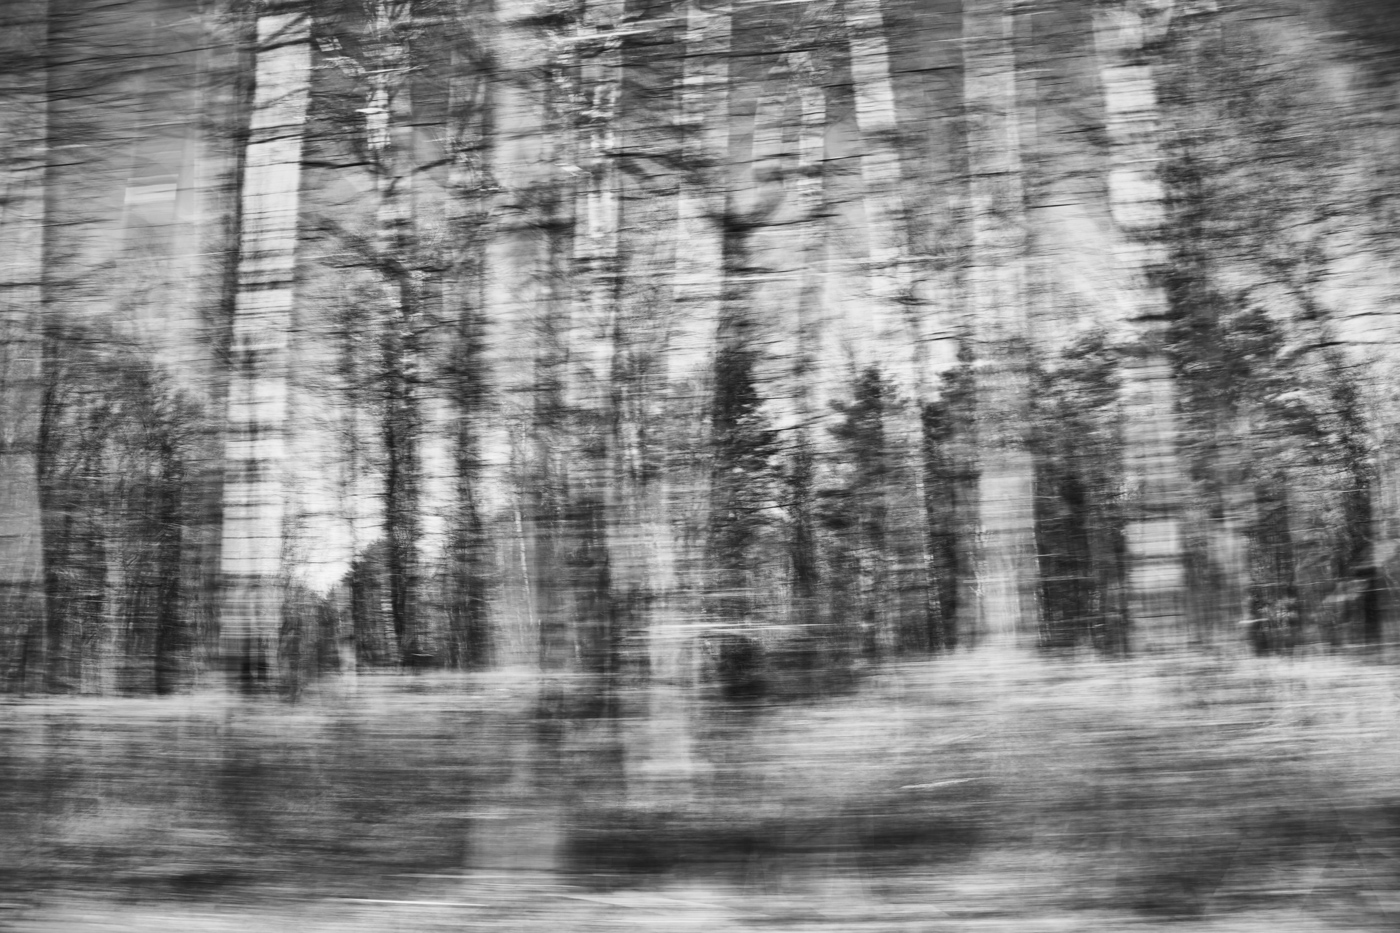 Driving past forest